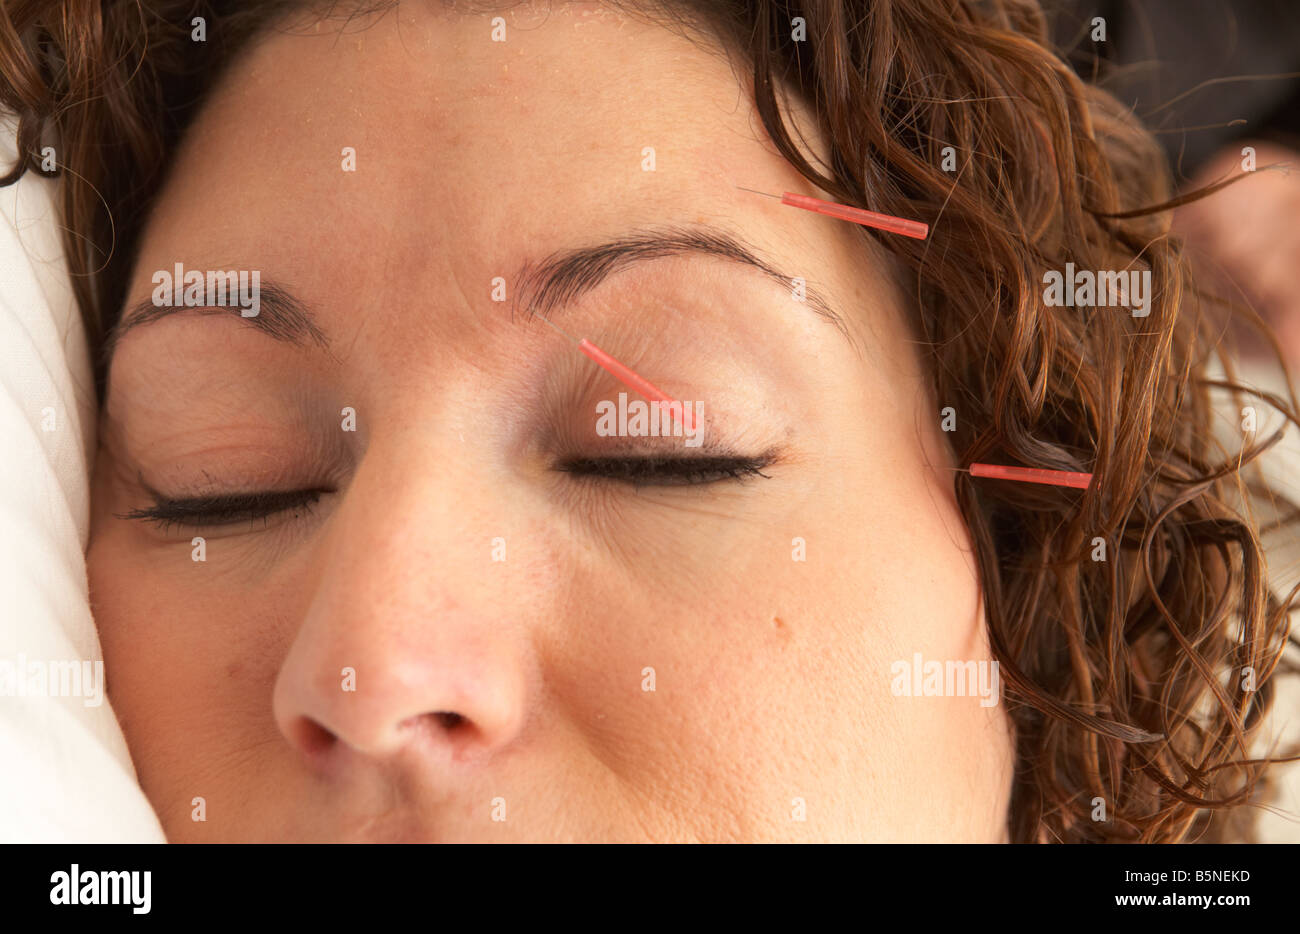 acupuncture needles on the face of an adult woman late twenties - Stock Image